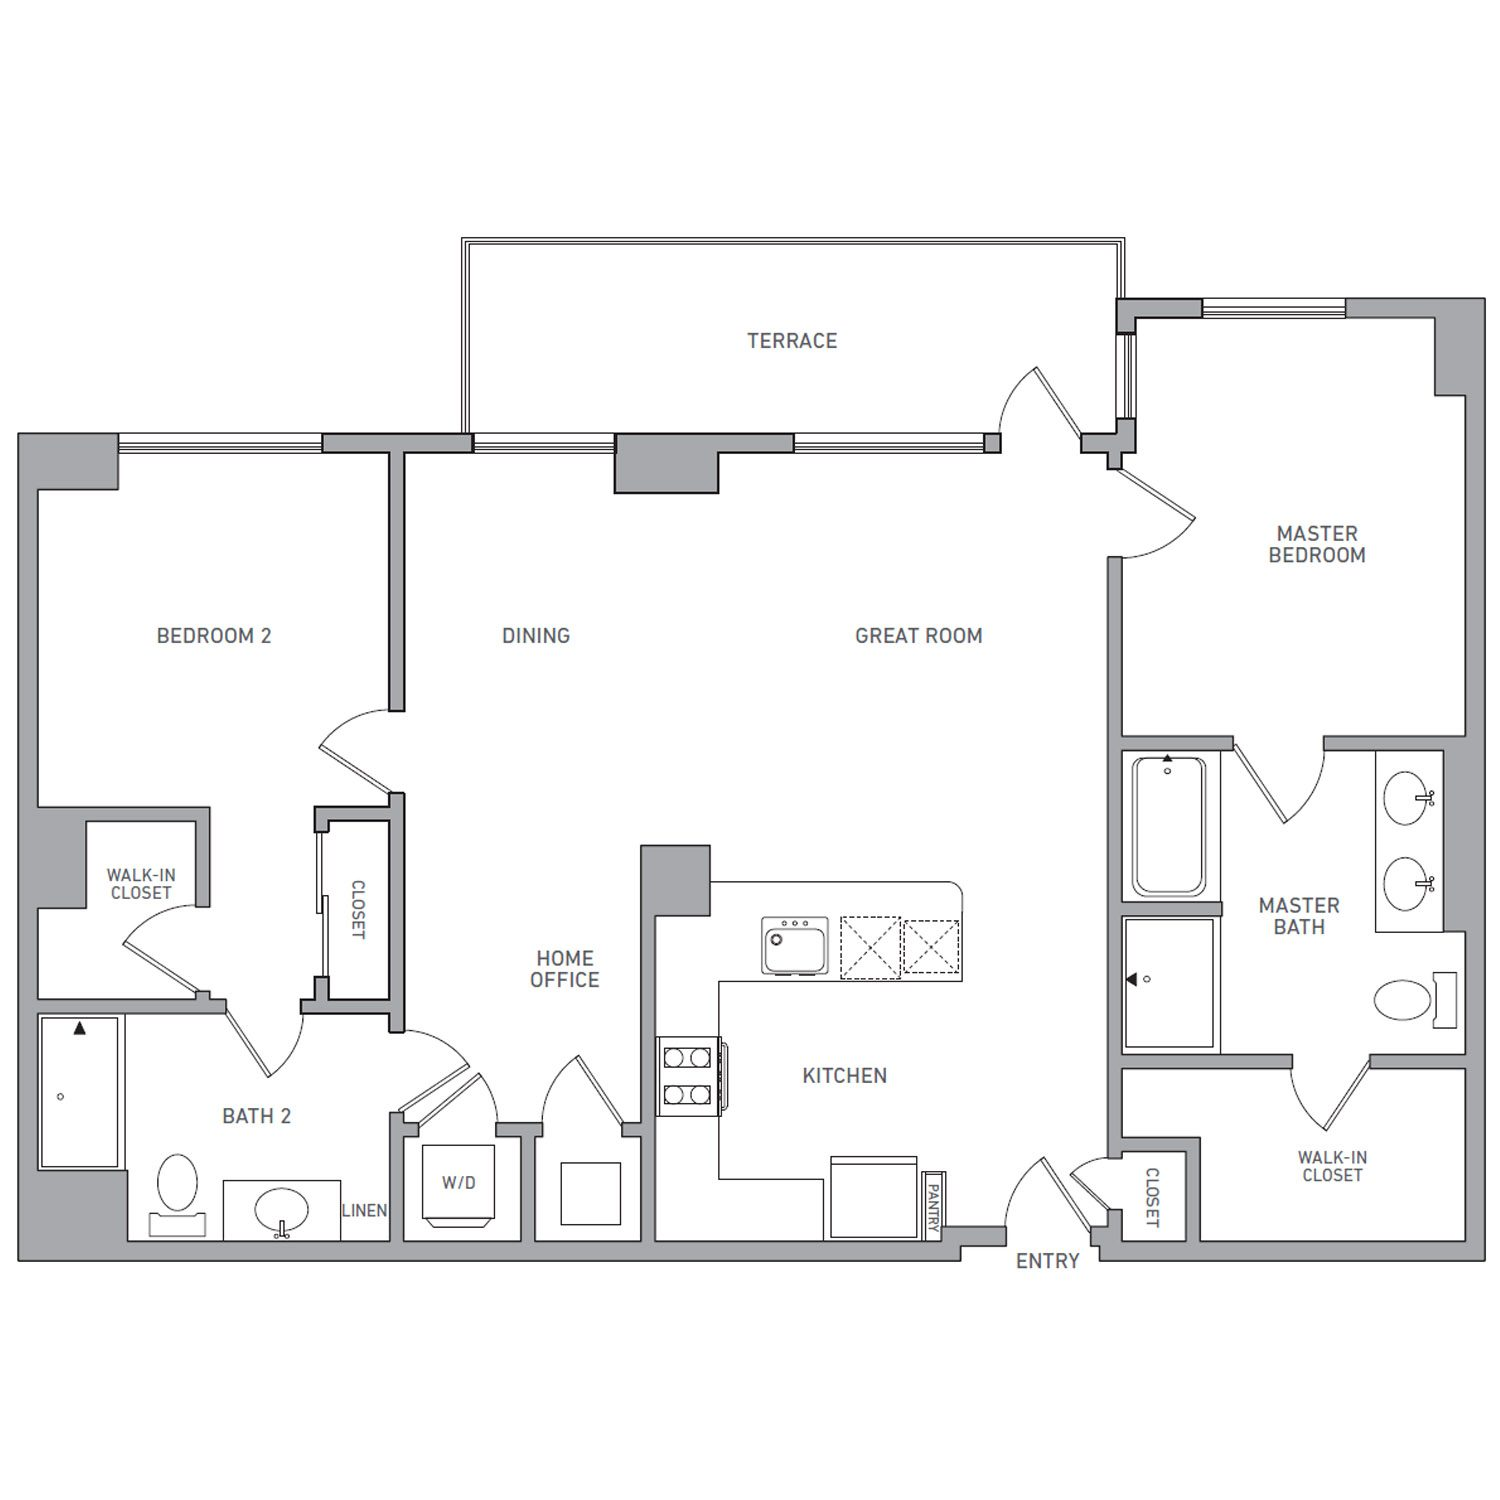 P H 207 floor plan diagram. Penthouse apartment with two bedrooms, two and a half bathrooms, an open kitchen dining and living area, a terrace, and a washer dryer.